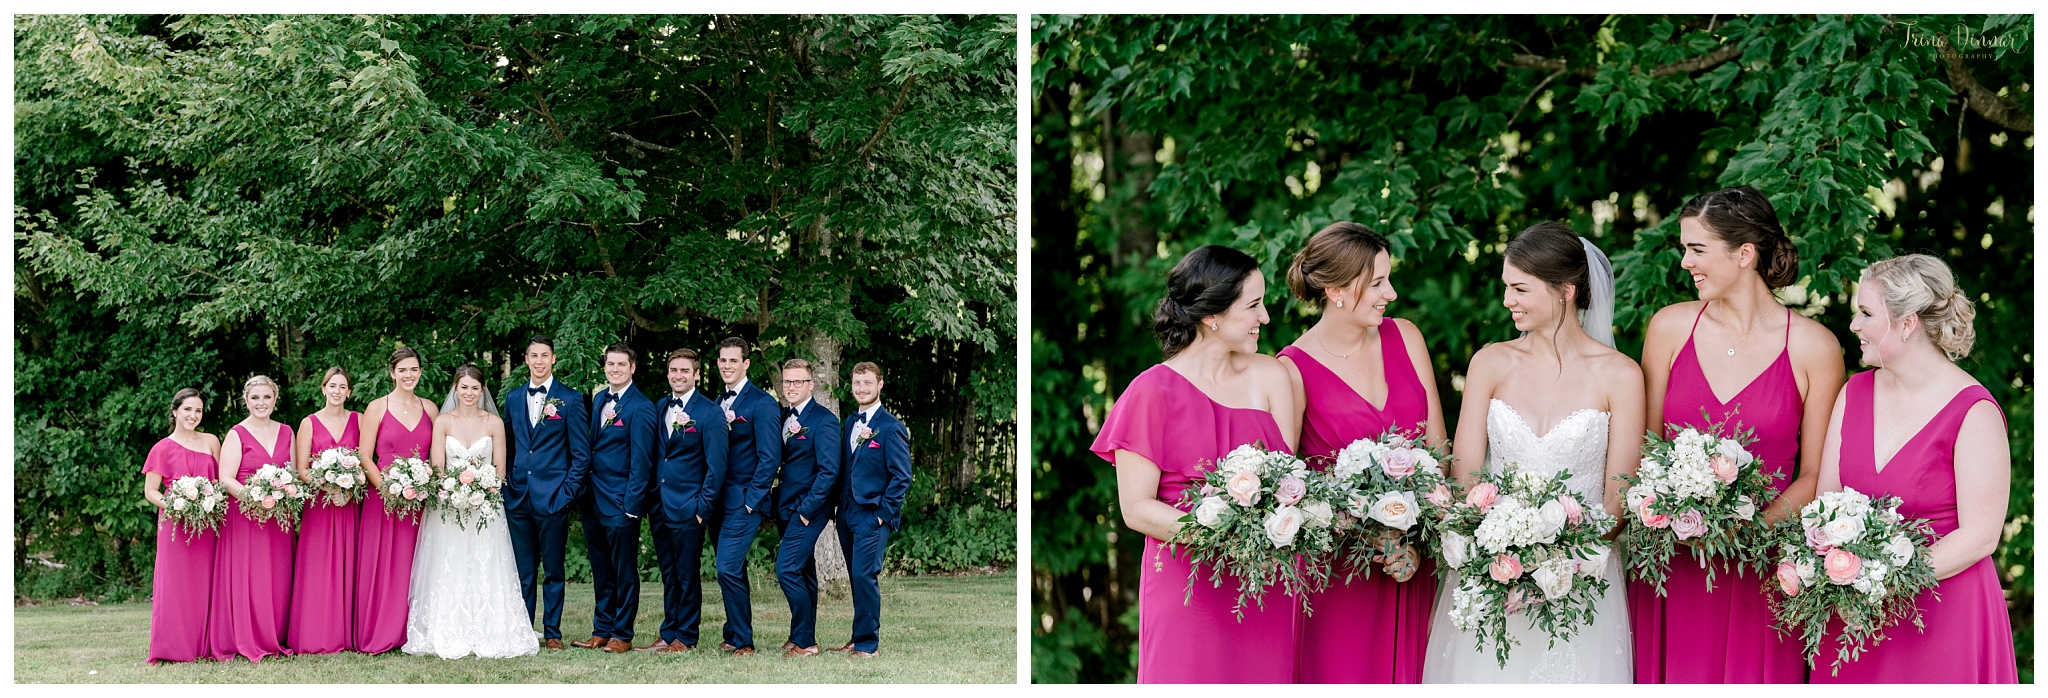 Fuchsia and Navy Themed Wedding Party Attire